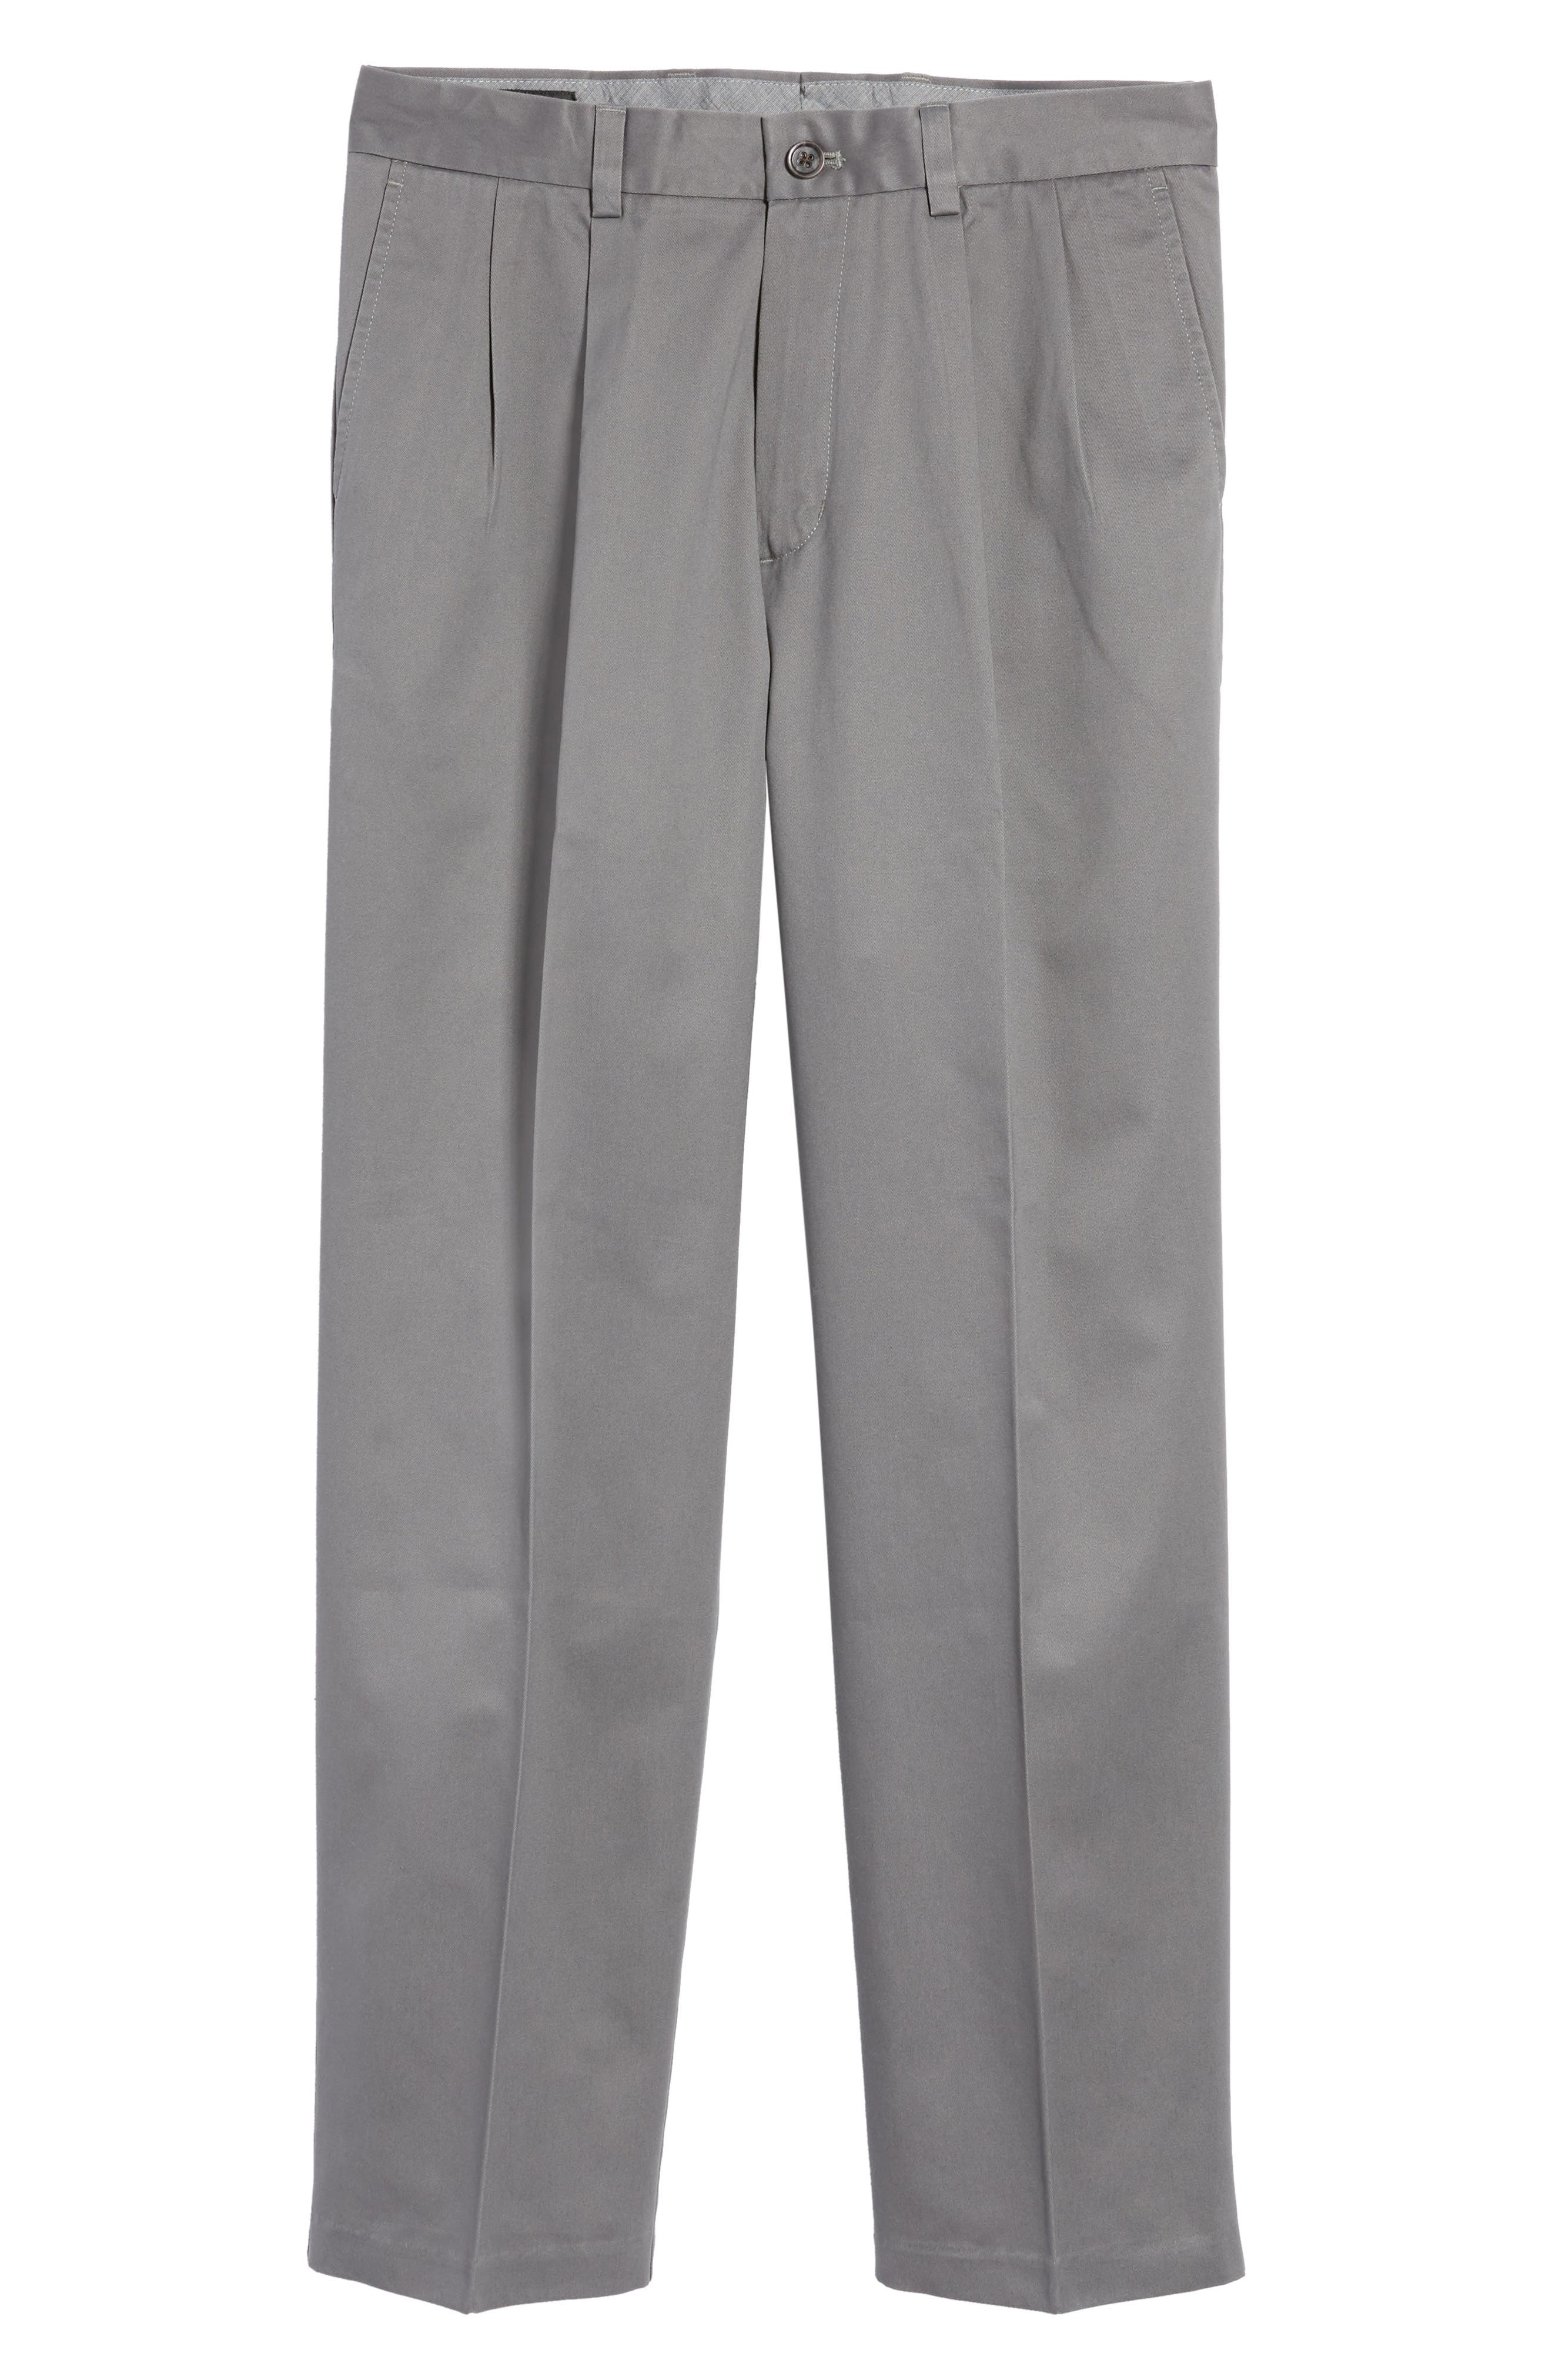 'Classic' Smartcare<sup>™</sup> Relaxed Fit Double Pleated Cotton Pants,                             Alternate thumbnail 2, color,                             Grey Tornado